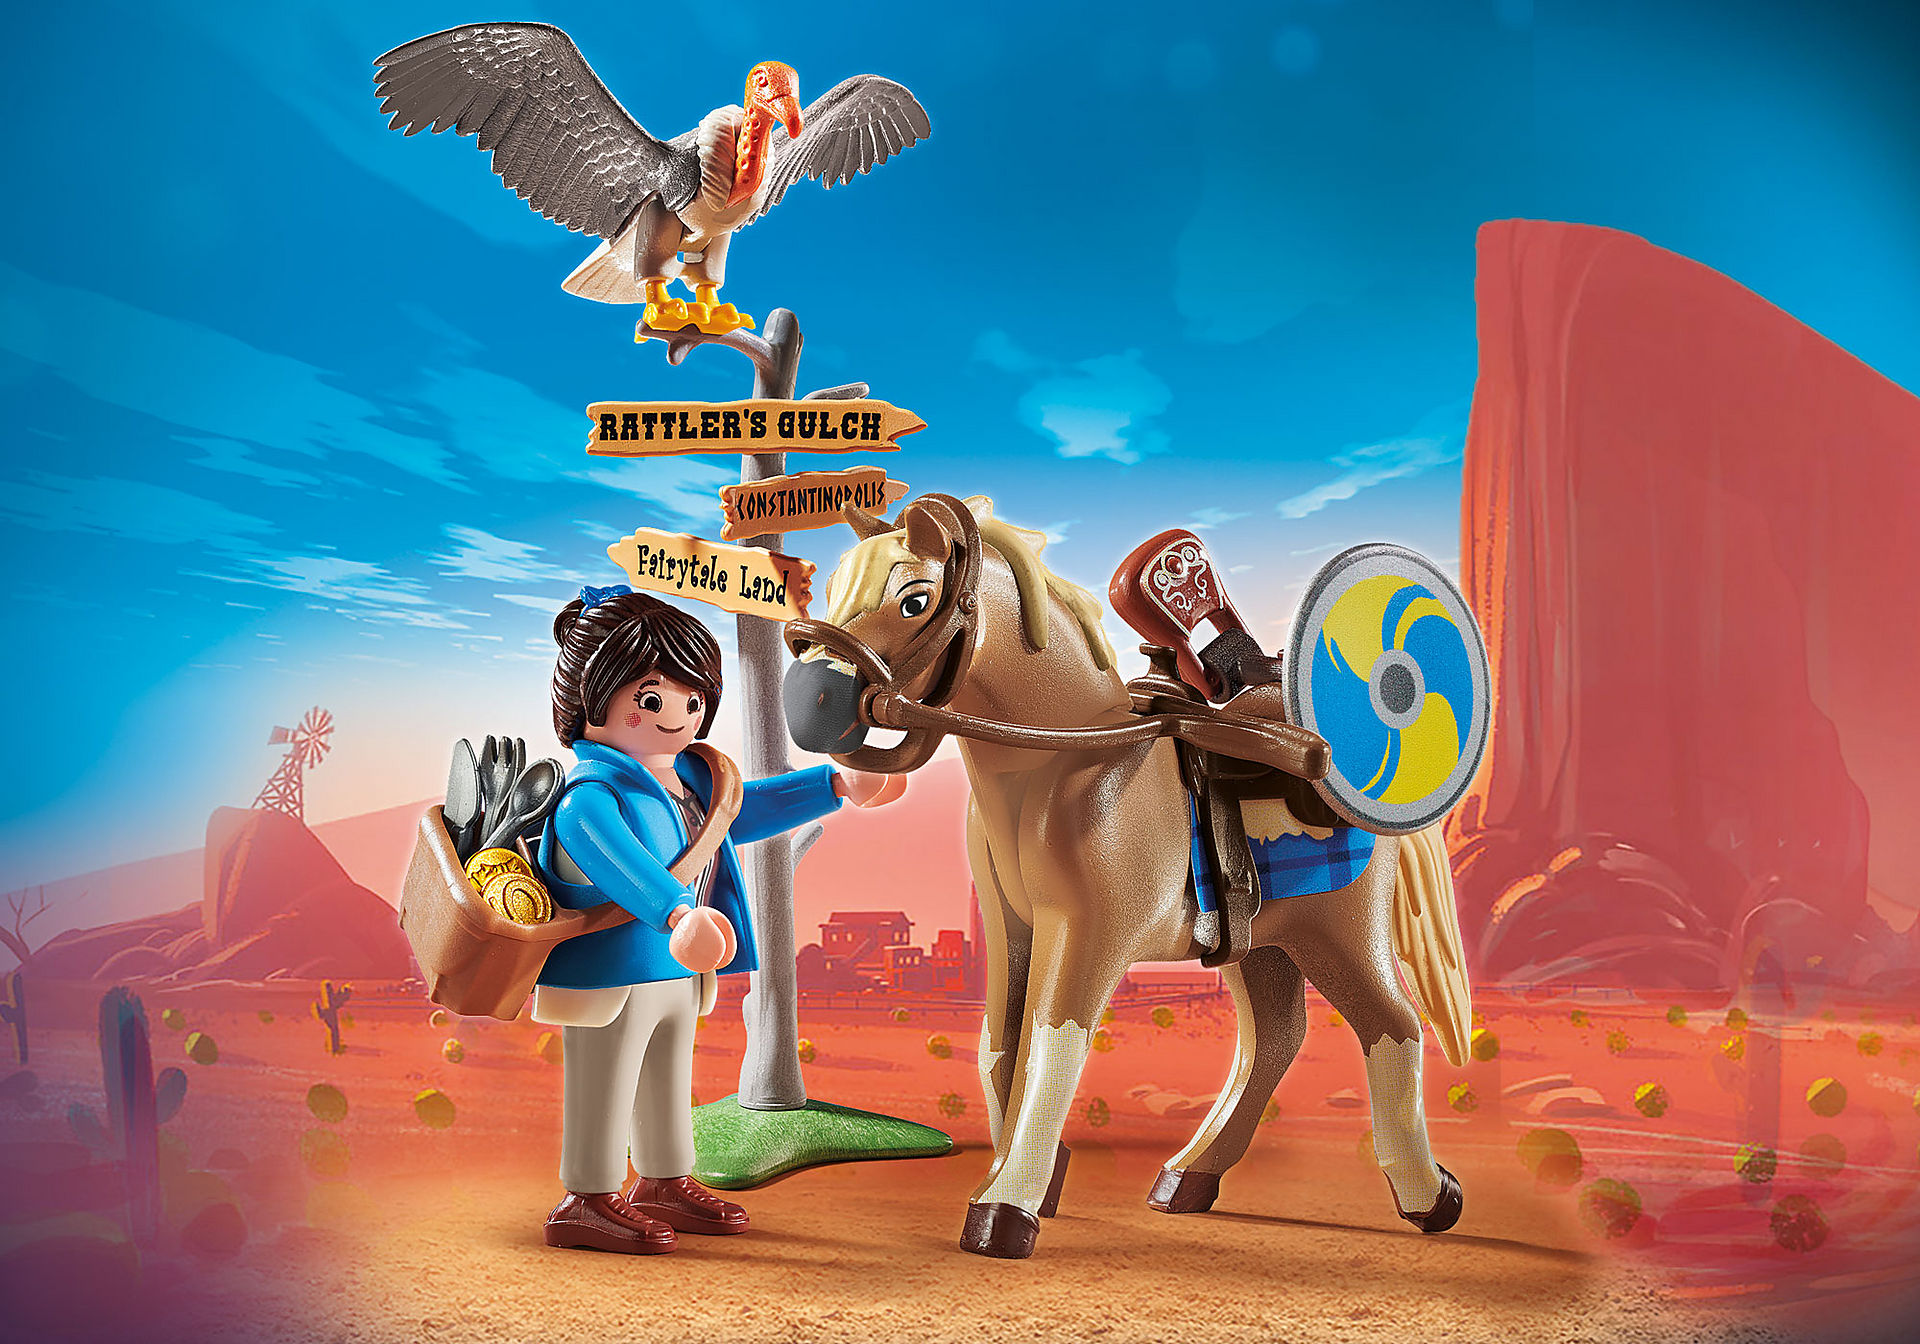 http://media.playmobil.com/i/playmobil/70072_product_detail/PLAYMOBIL: THE MOVIE Marla con Caballo